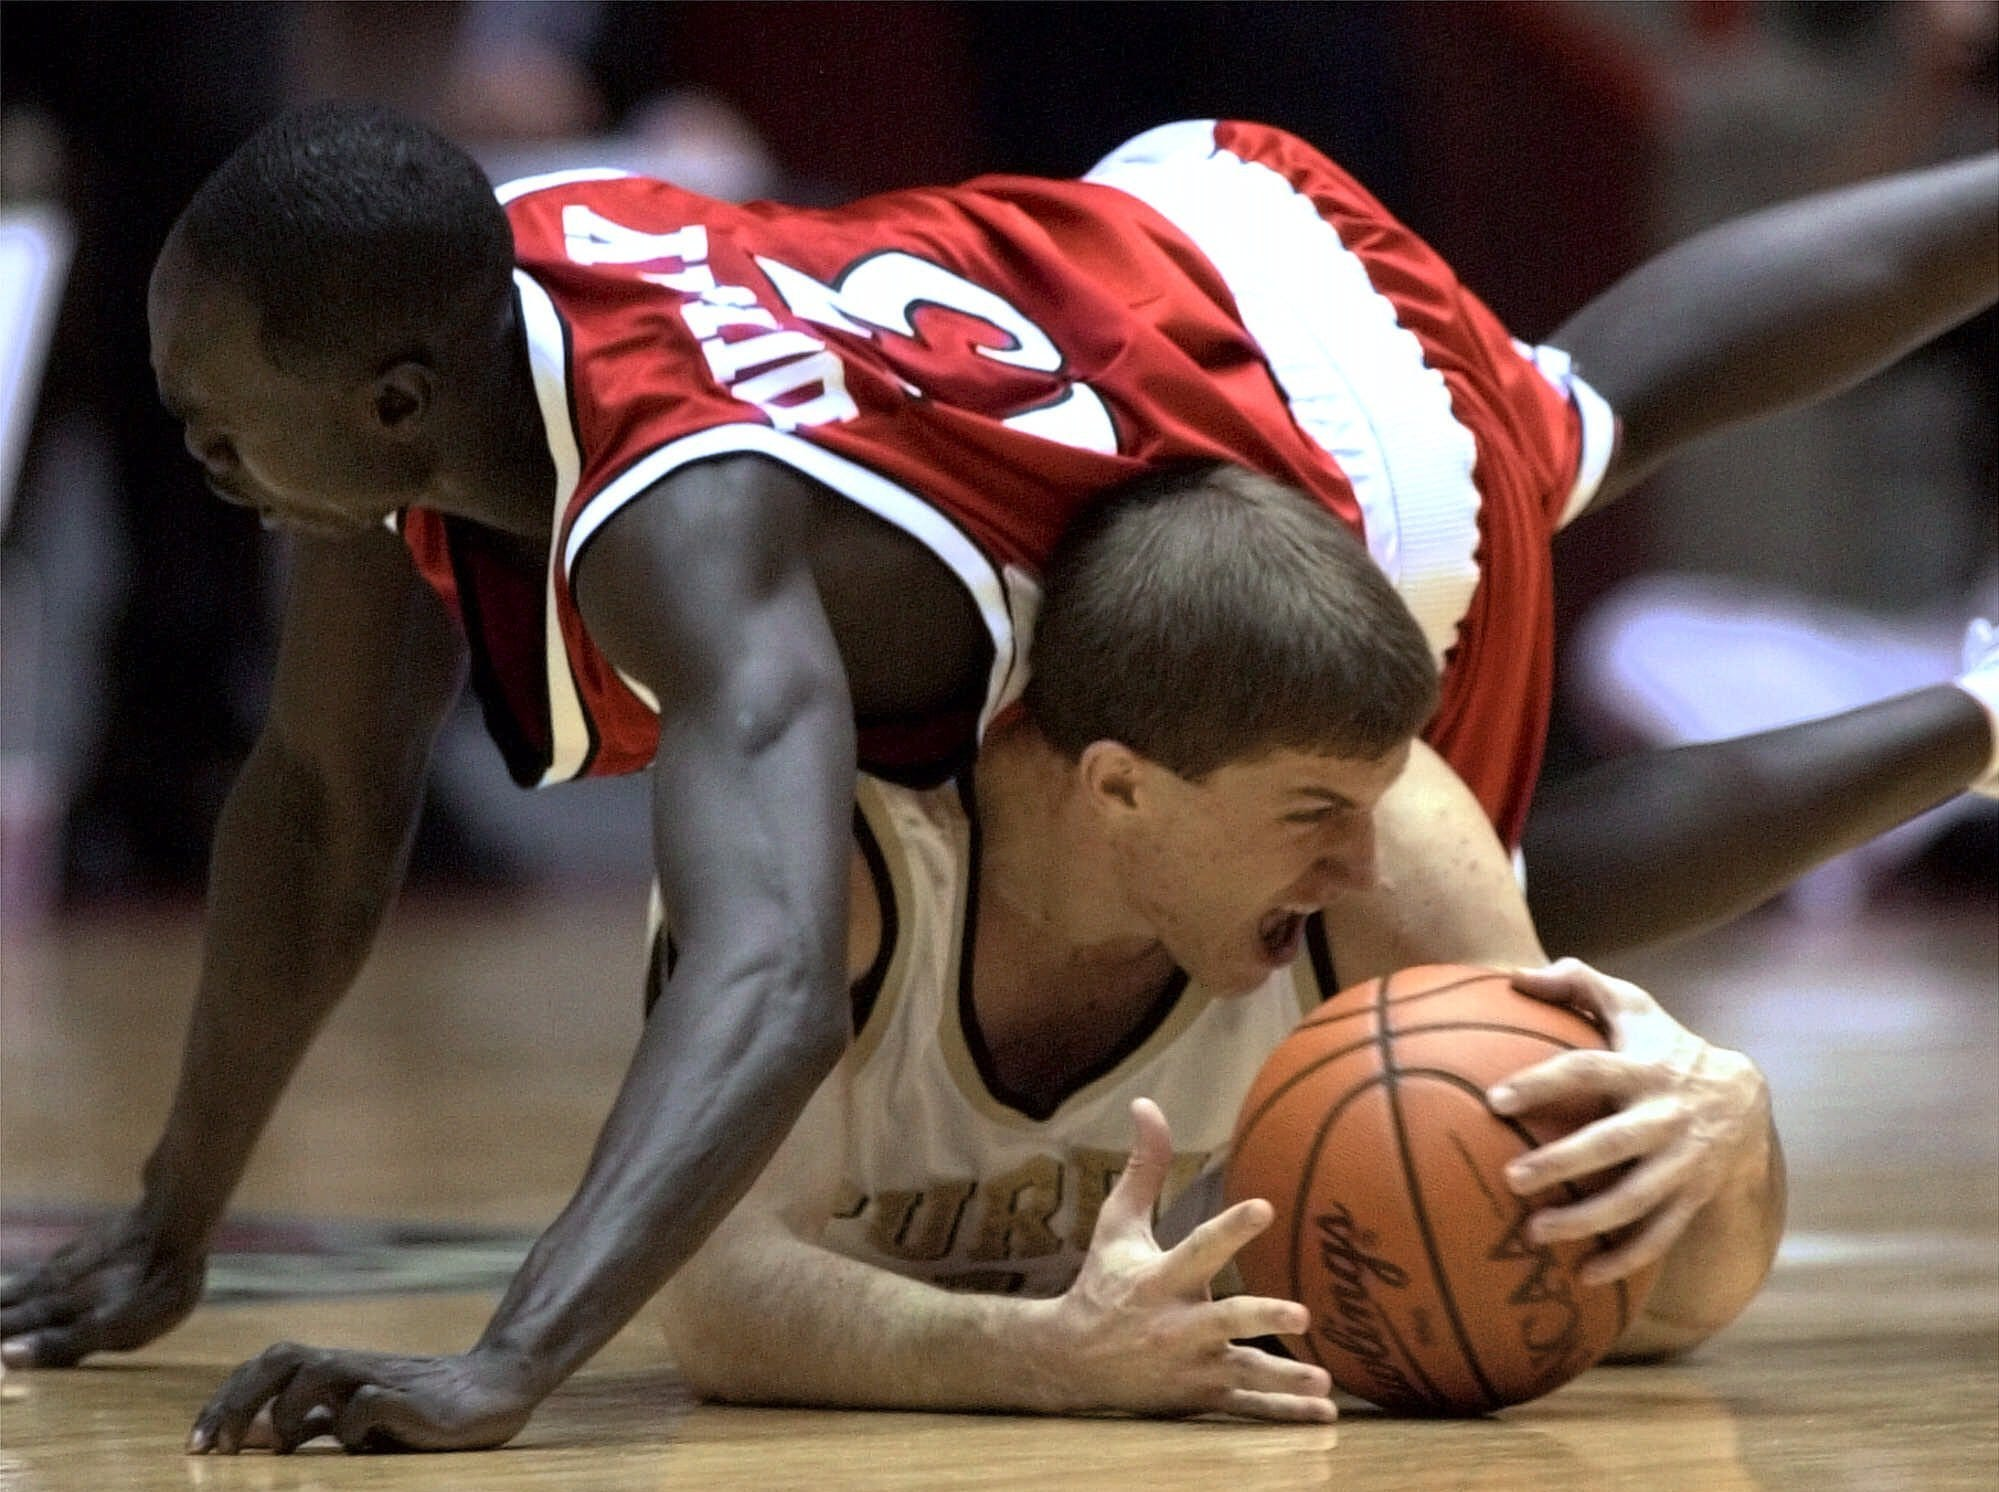 Wisconsin's Duany Duany (13) dives on Purdue's Chad Kerkhof during a scramble for a loose ball in the first half of the NCAA West Regional finals Saturday, March 25, 2000, in Albuquerque, N.M.